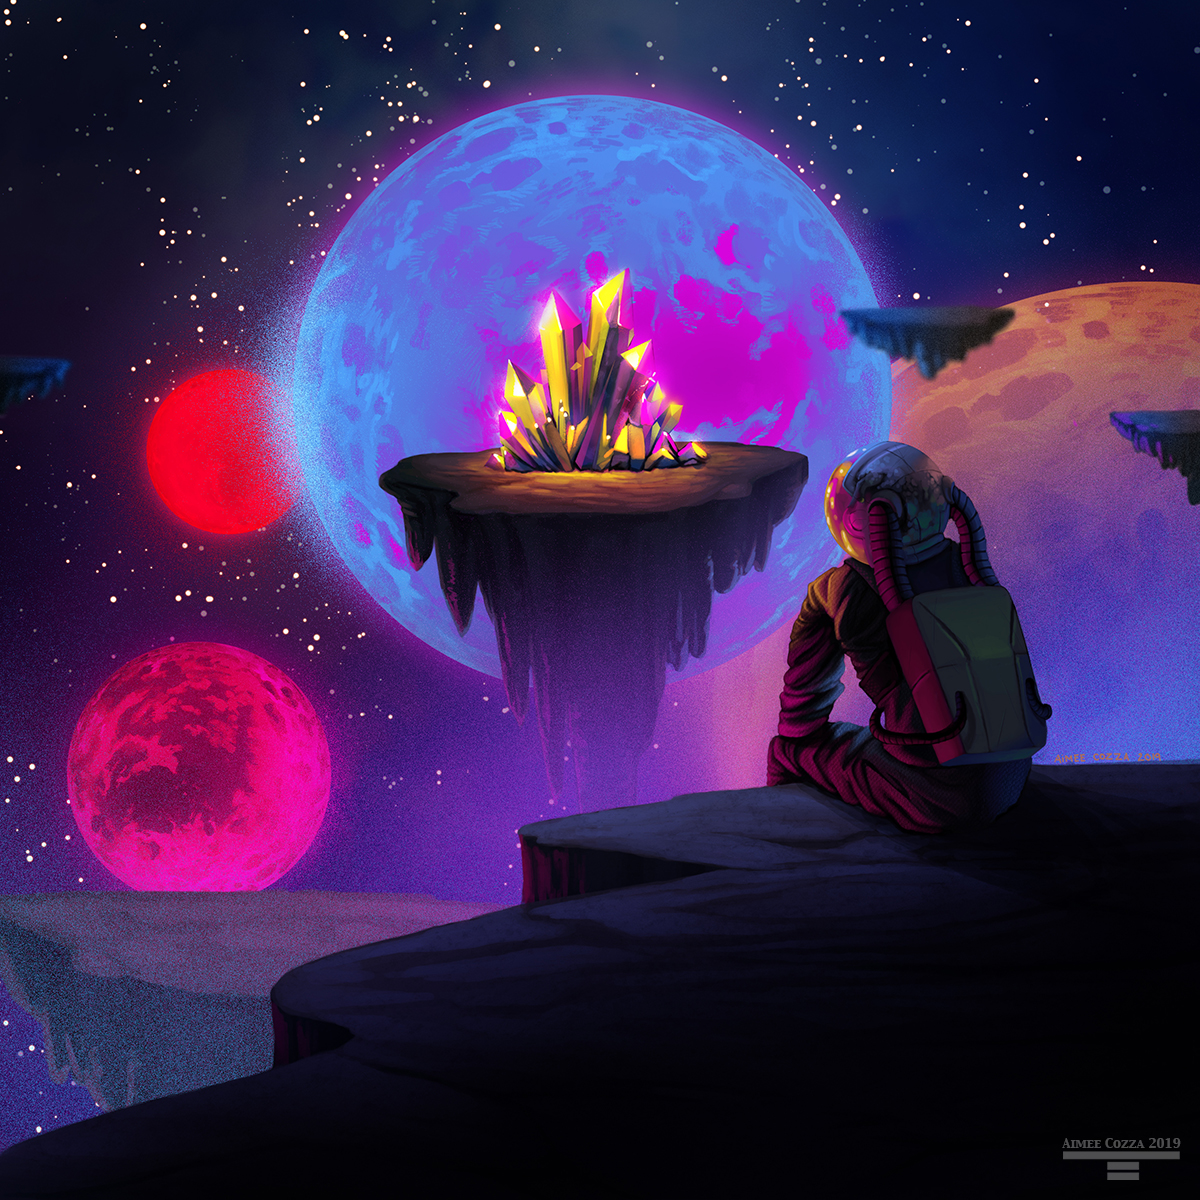 An astronaut sitting on a section of land looking into a swath of colorful planets and landmasses in the distance. There is a landmass in the center with bright yellow glowing crystals